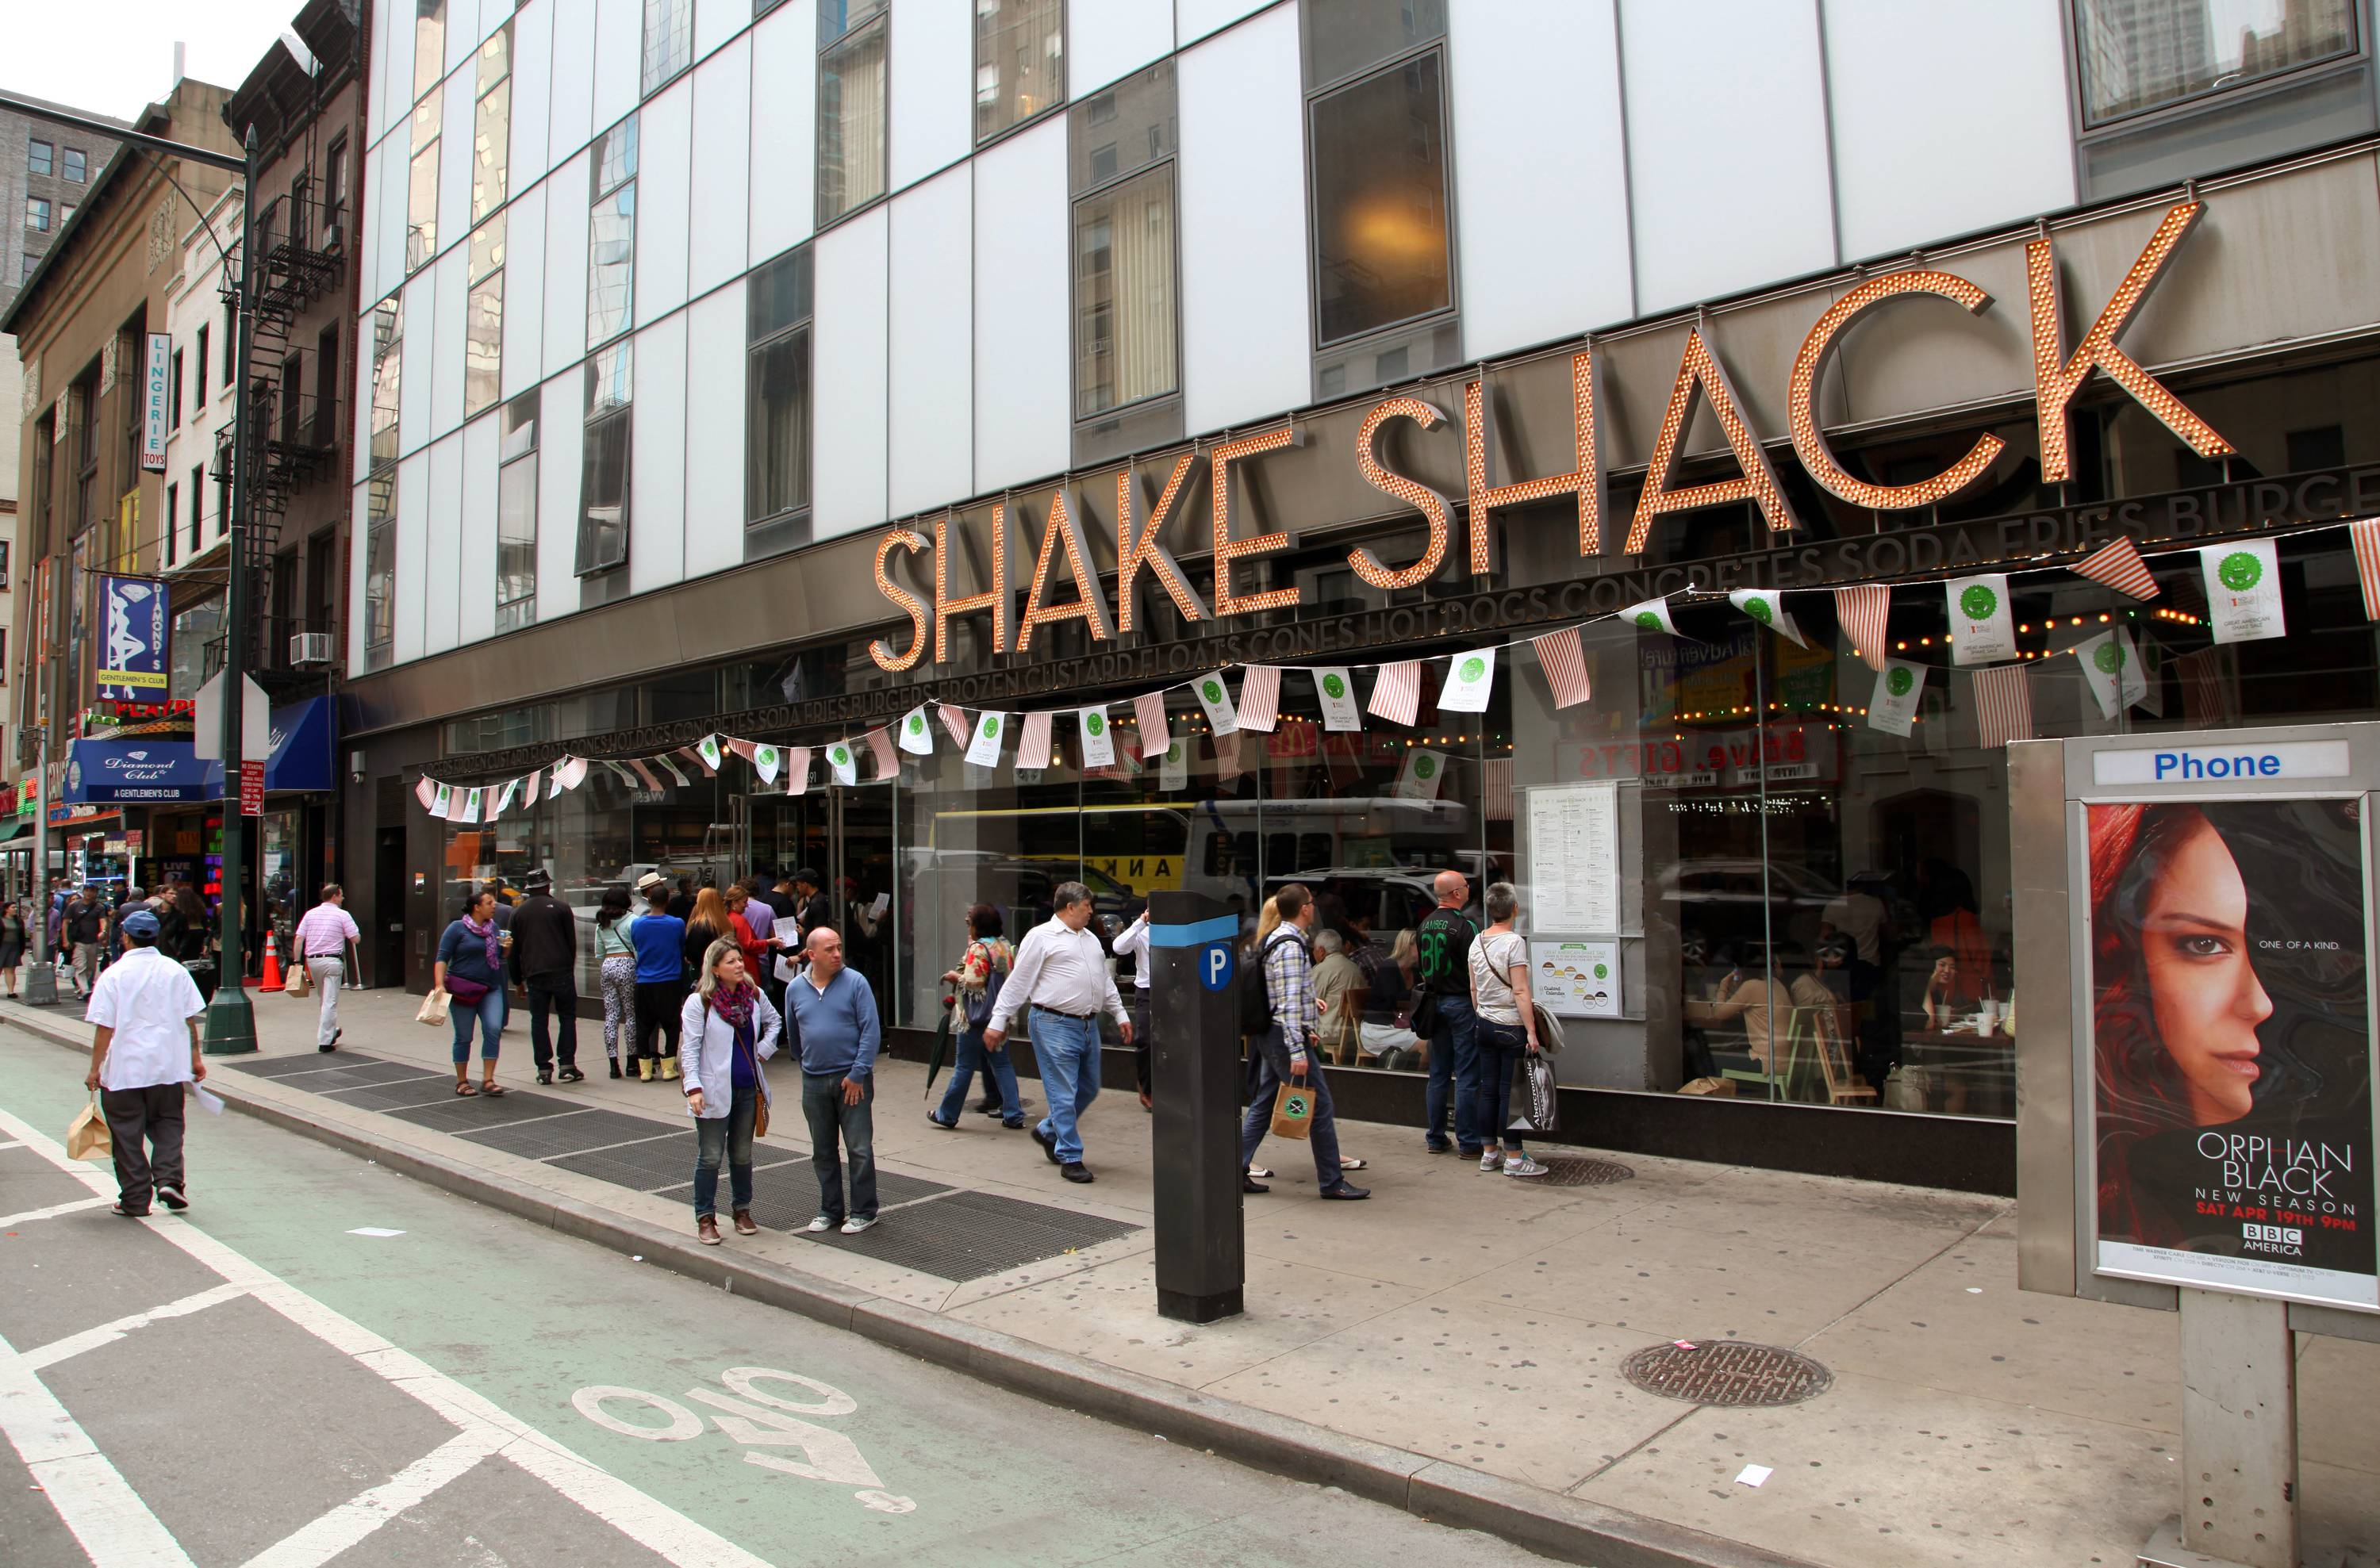 Shake Shack's upscale fast food outpost offers burgers, hot dogs, fries and shakes courtesy of restaurateur Danny Meyer. The lines are long and seats never free, but if you pick a concrete — dense frozen custard ice cream in a cup with a straw — an express line can get you in and out in time for the theater curtain.